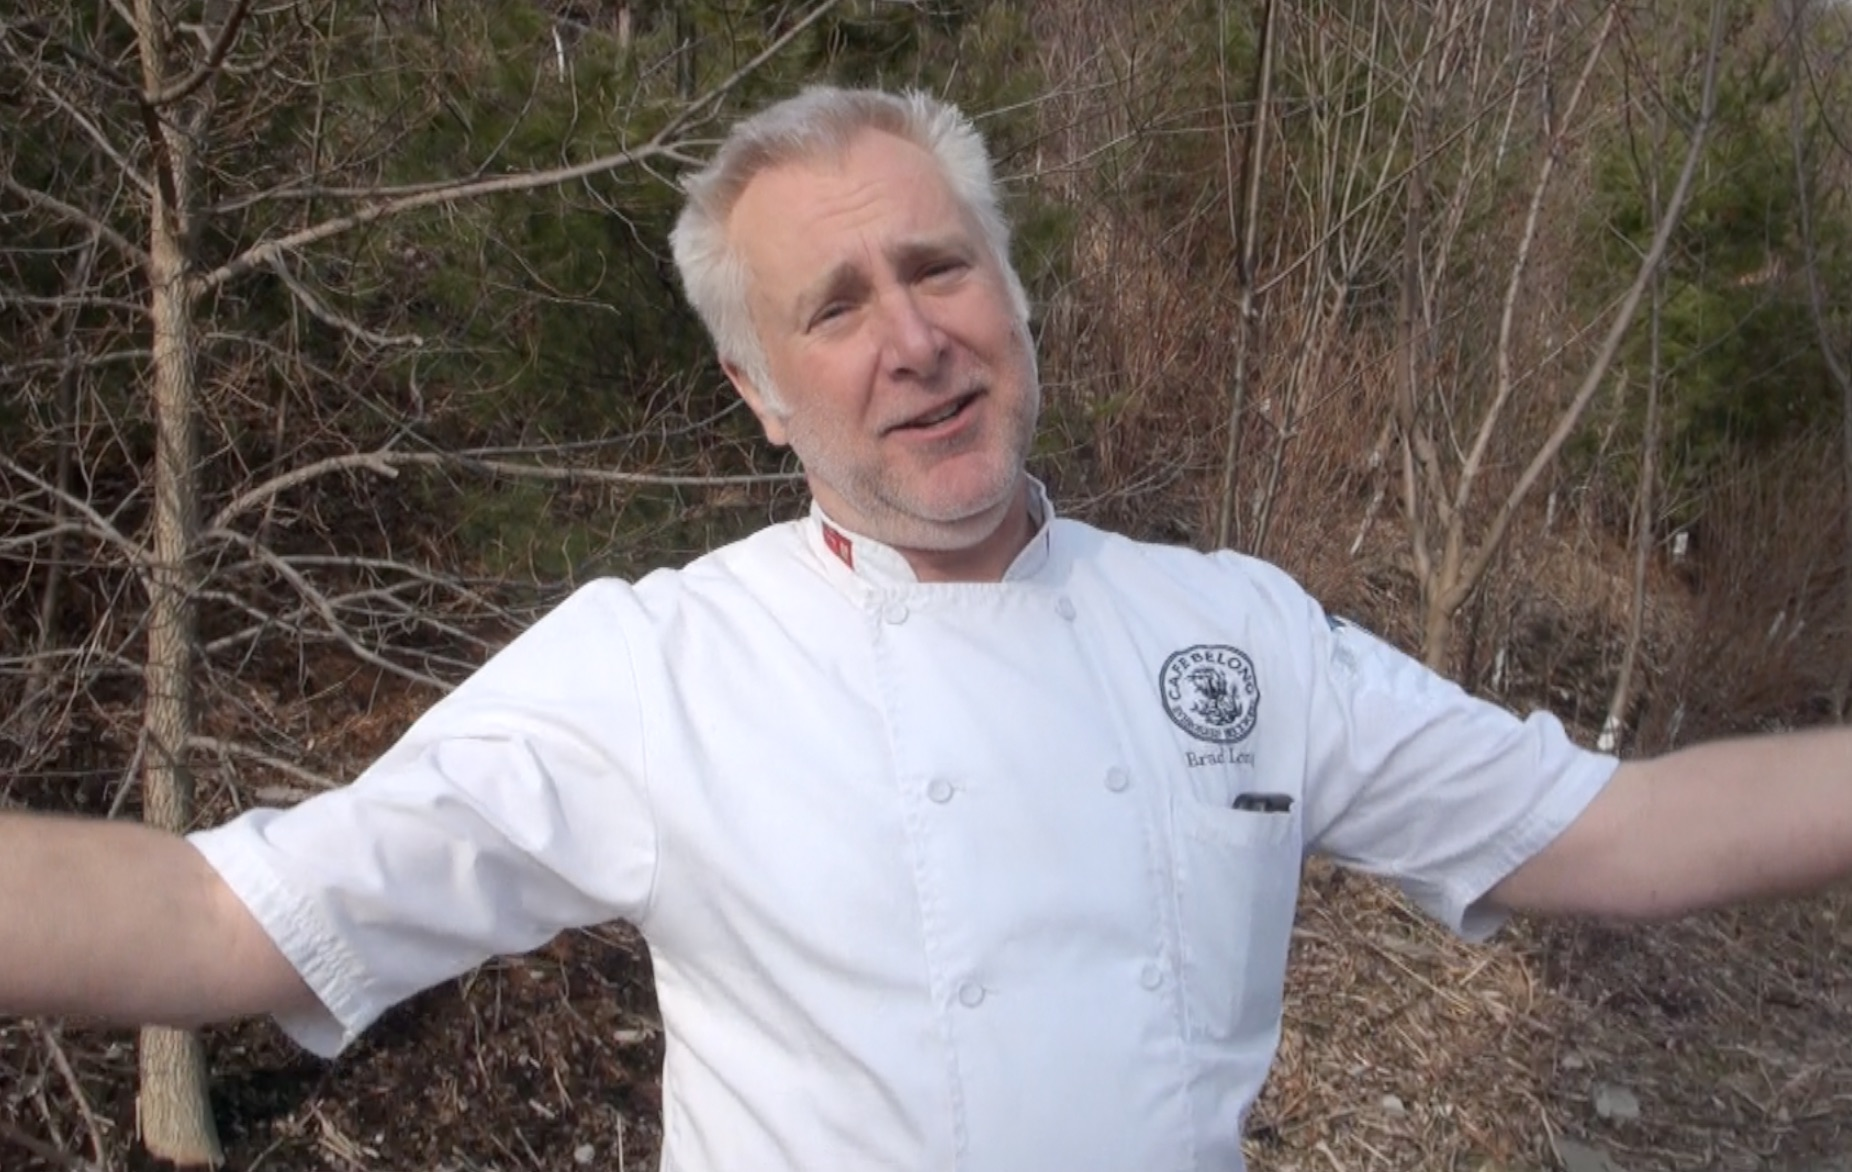 Chef Brad Long is passionate about foraged Ramps and Fiddleheads, but warns us of some nefarious  practices regarding their harvesting.